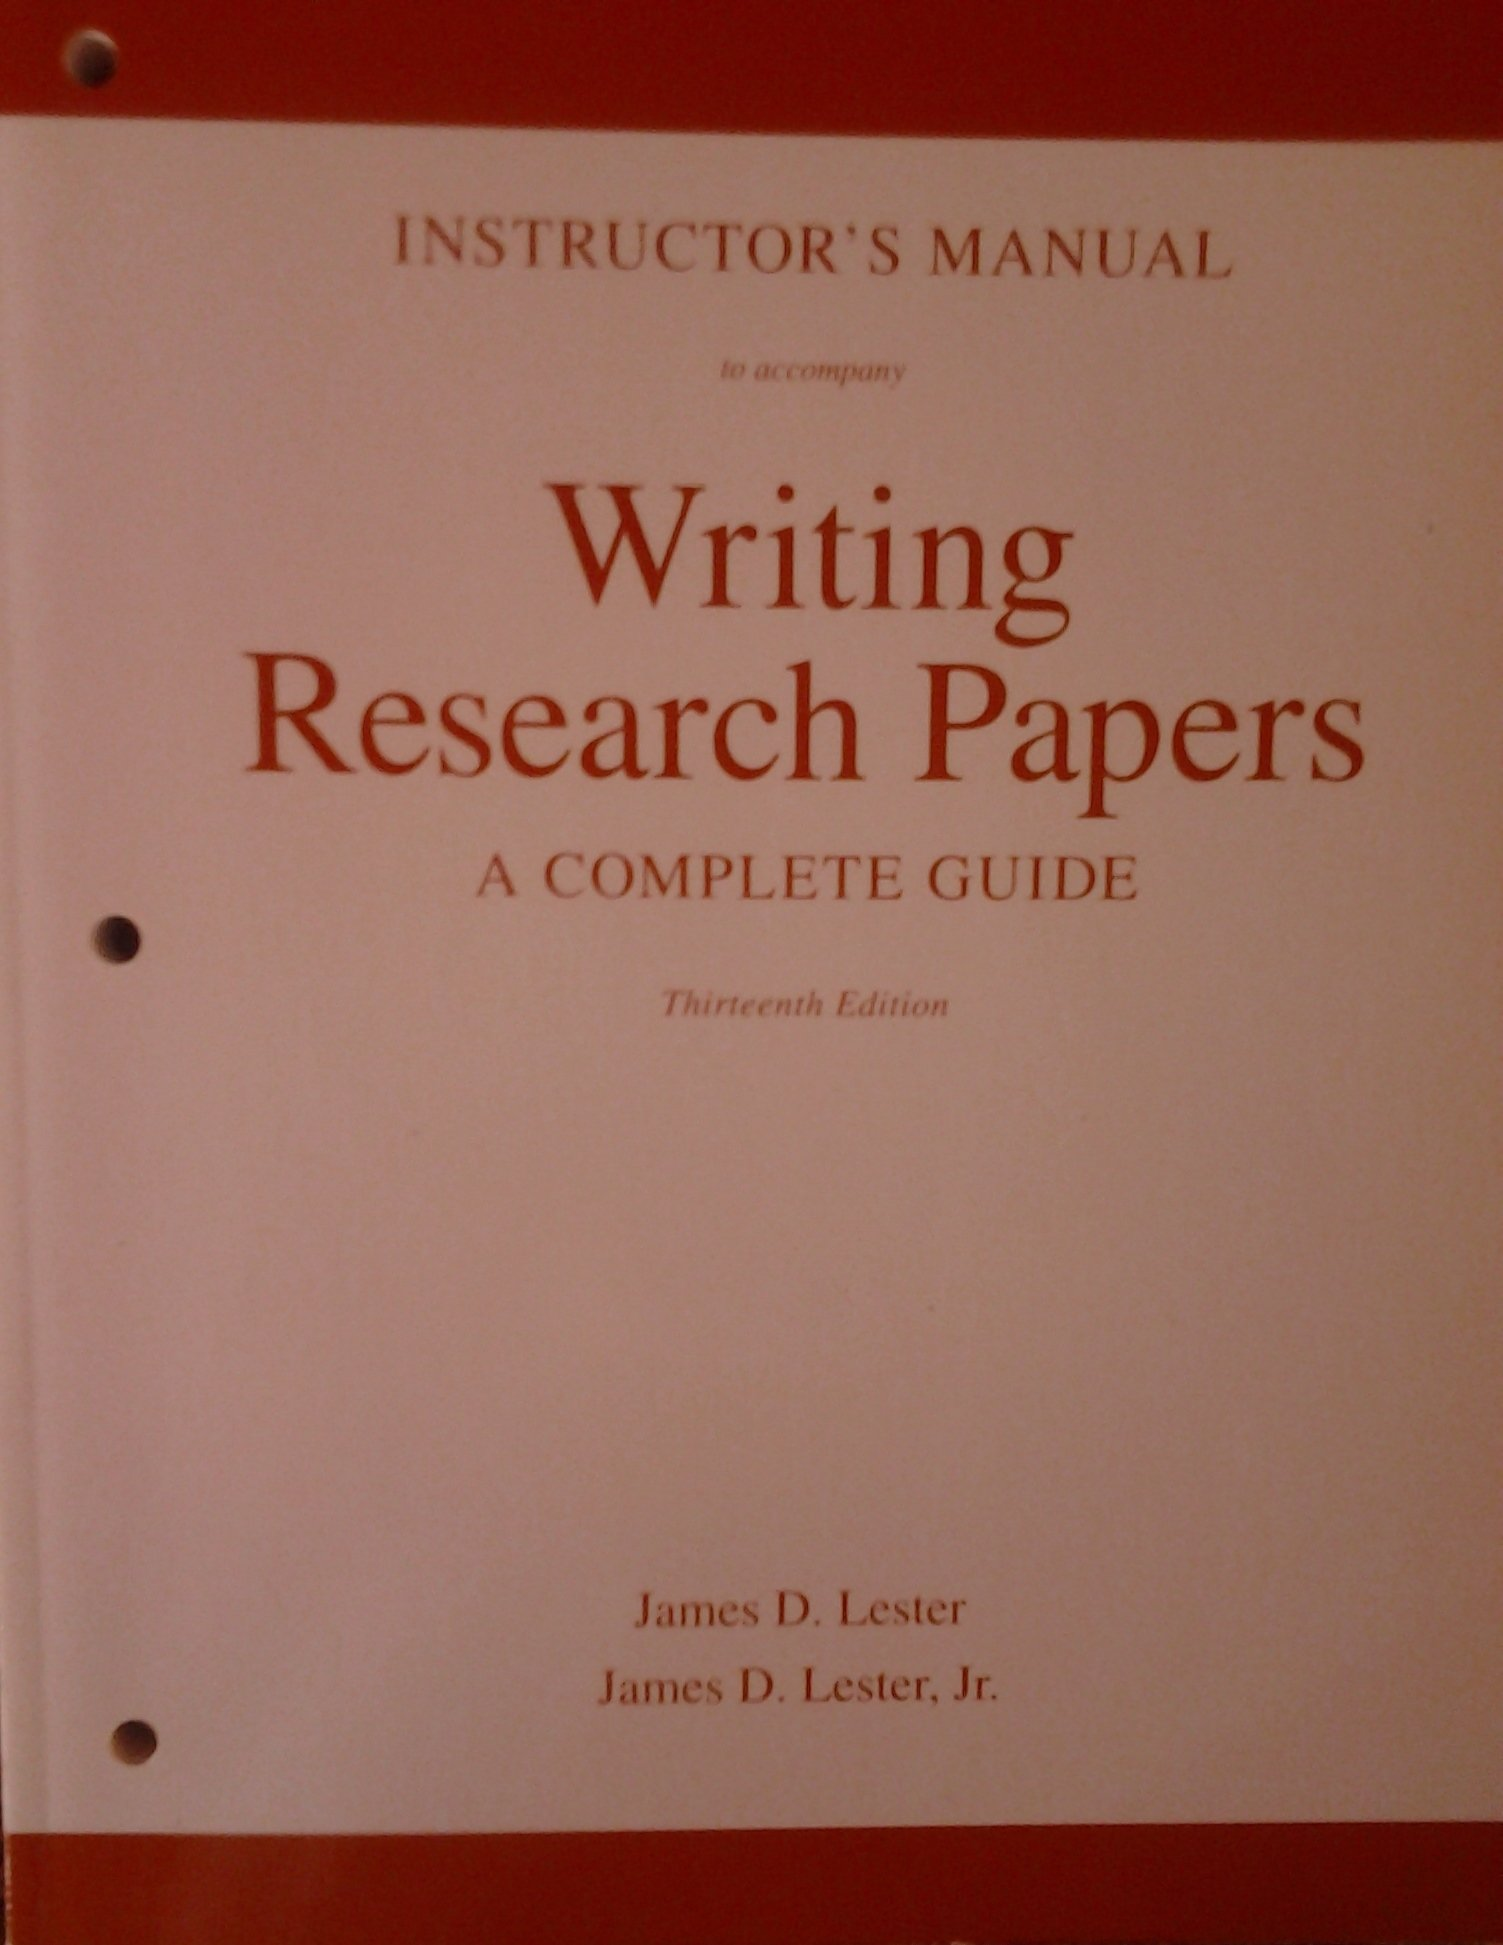 Instructor's Manual to Accompany Writing Research Papers: James D. Lester:  9780205652877: Amazon.com: Books